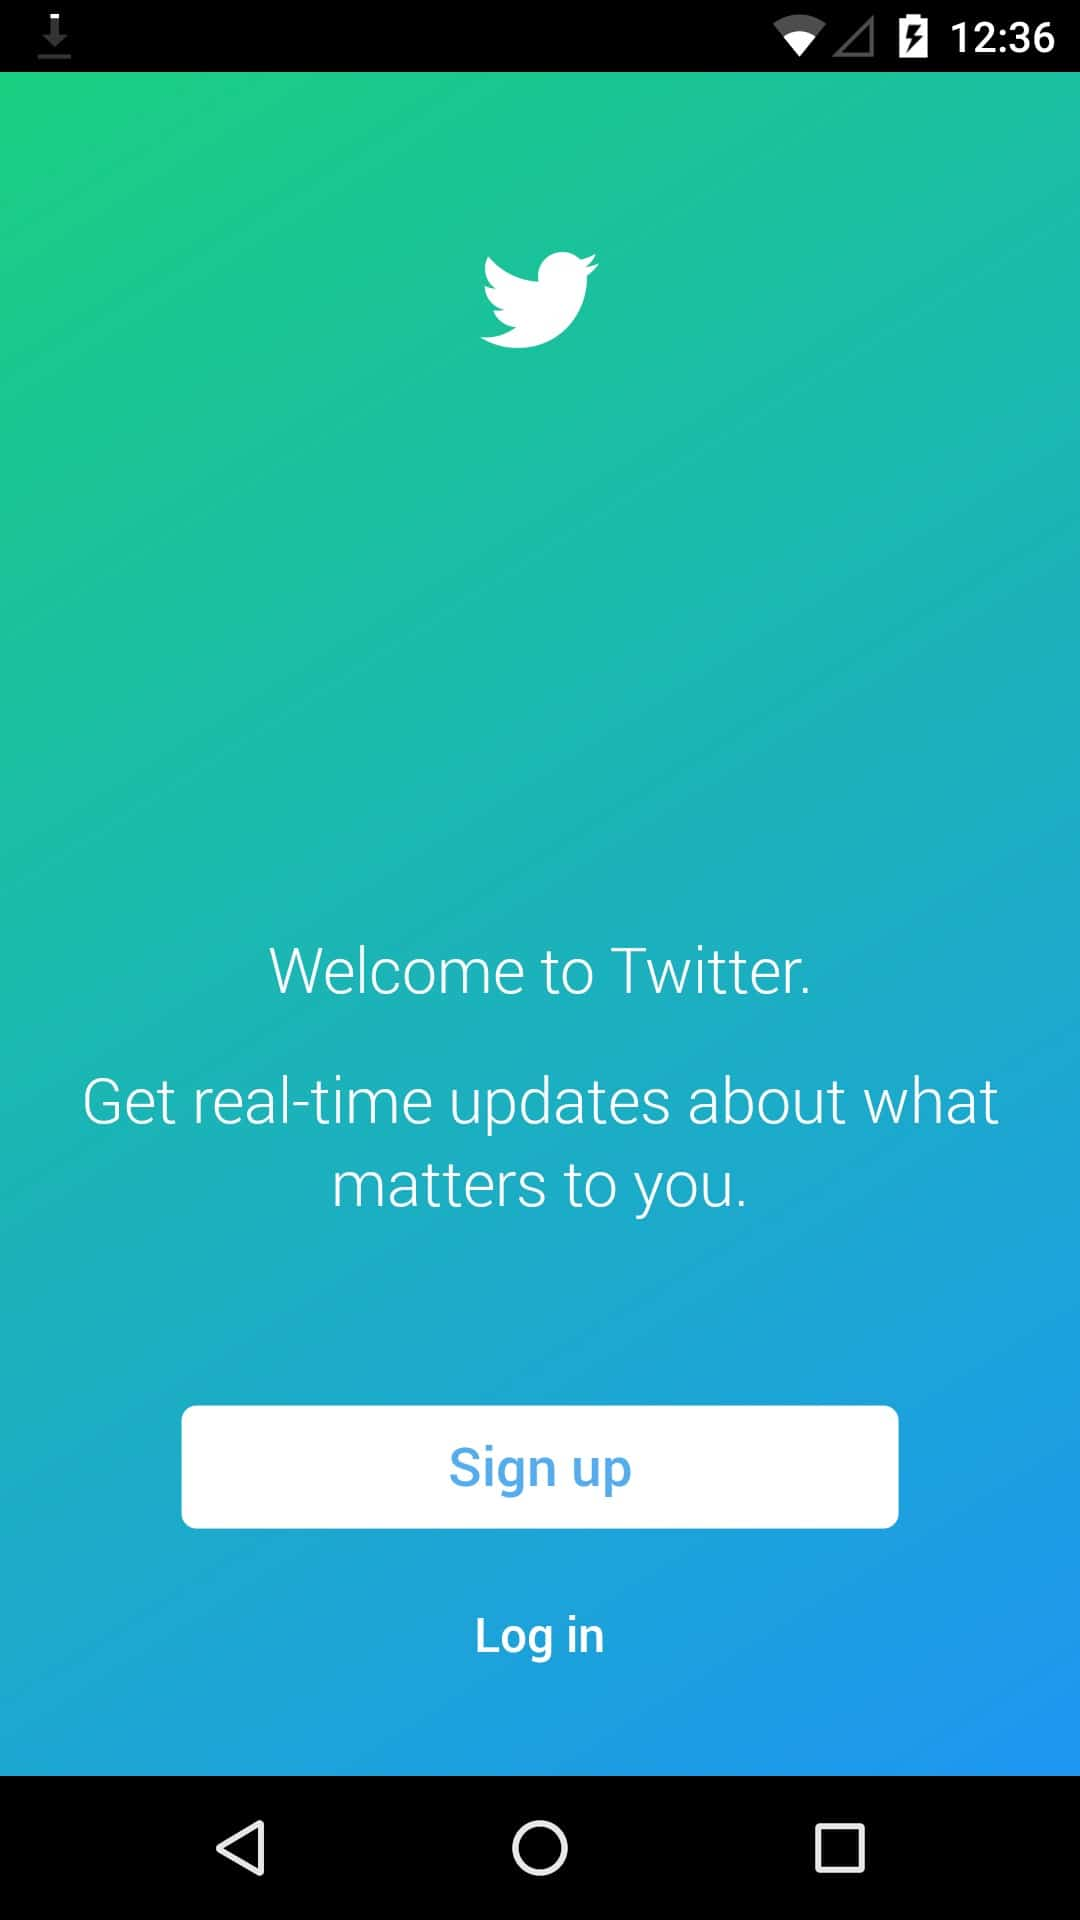 Sign up screen by twitter from UIGarage